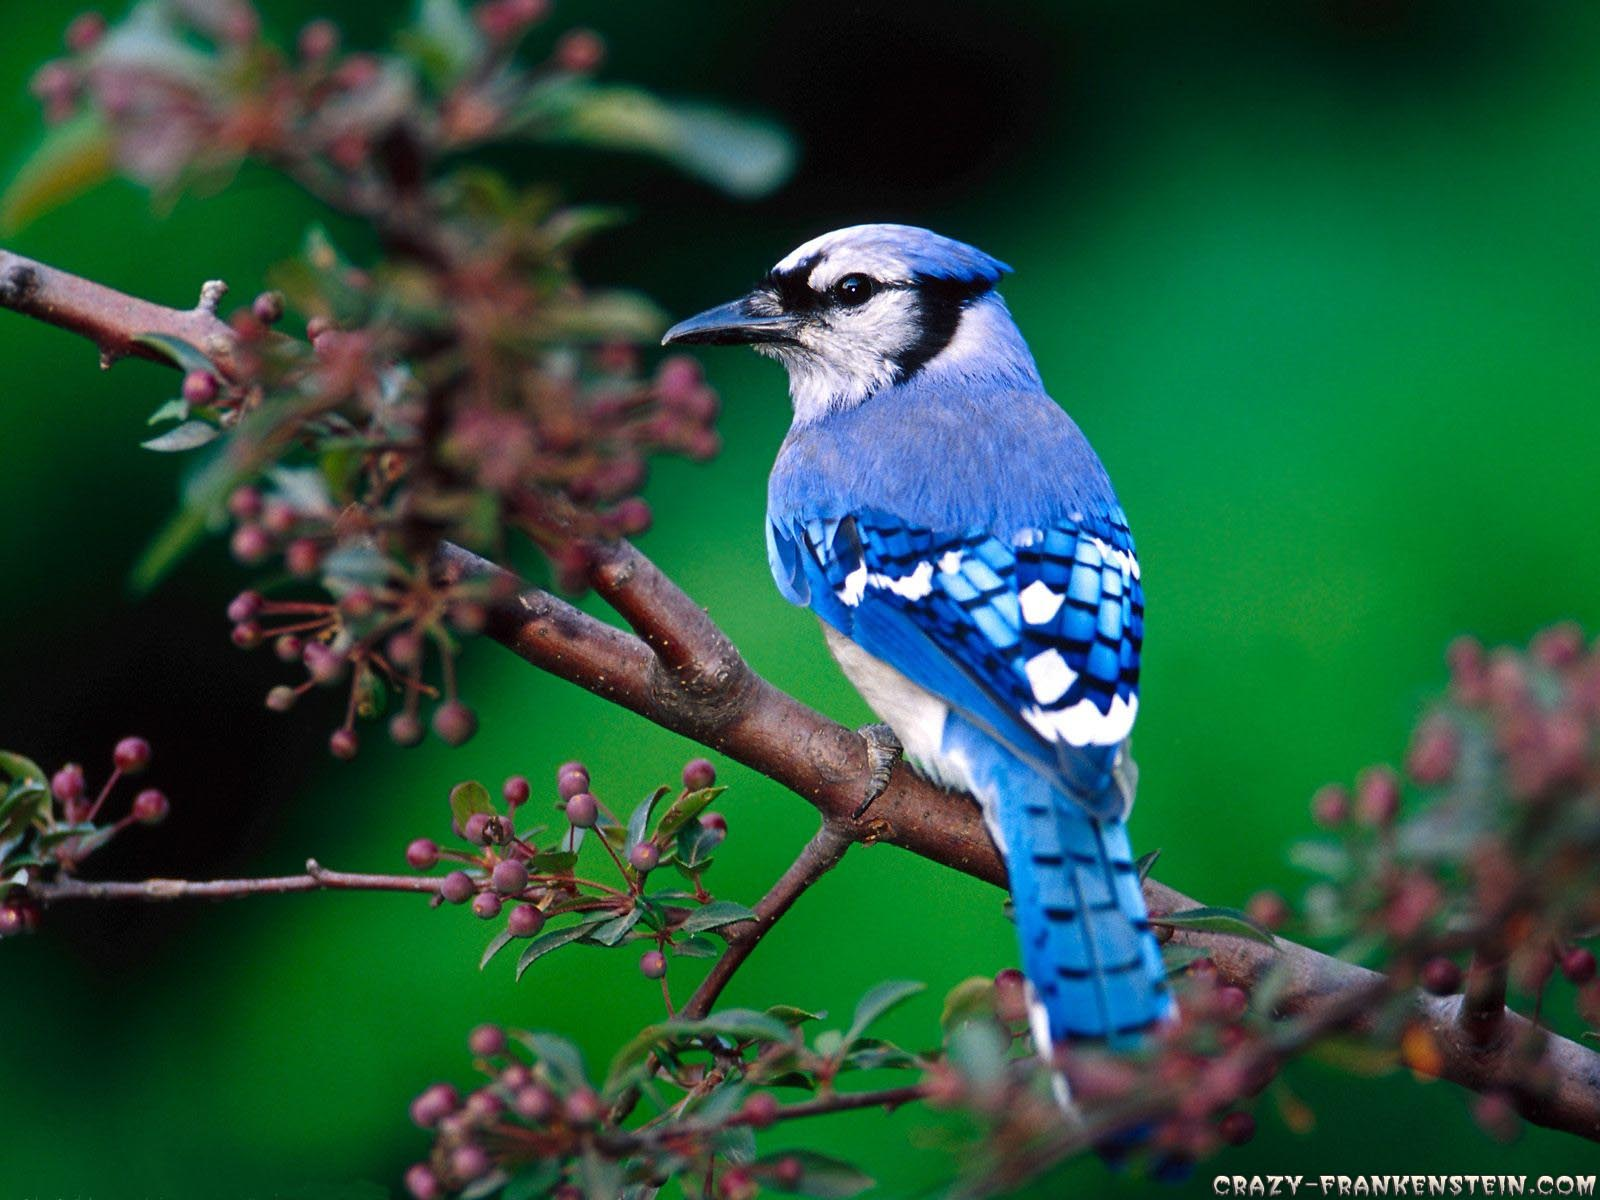 http://3.bp.blogspot.com/_NjKUxLEcWP0/TTmn5H-3GXI/AAAAAAAAAFg/qTDvNvsje5Q/s1600/beautiful-blue-bird-wallpaper-1600x1200.jpg